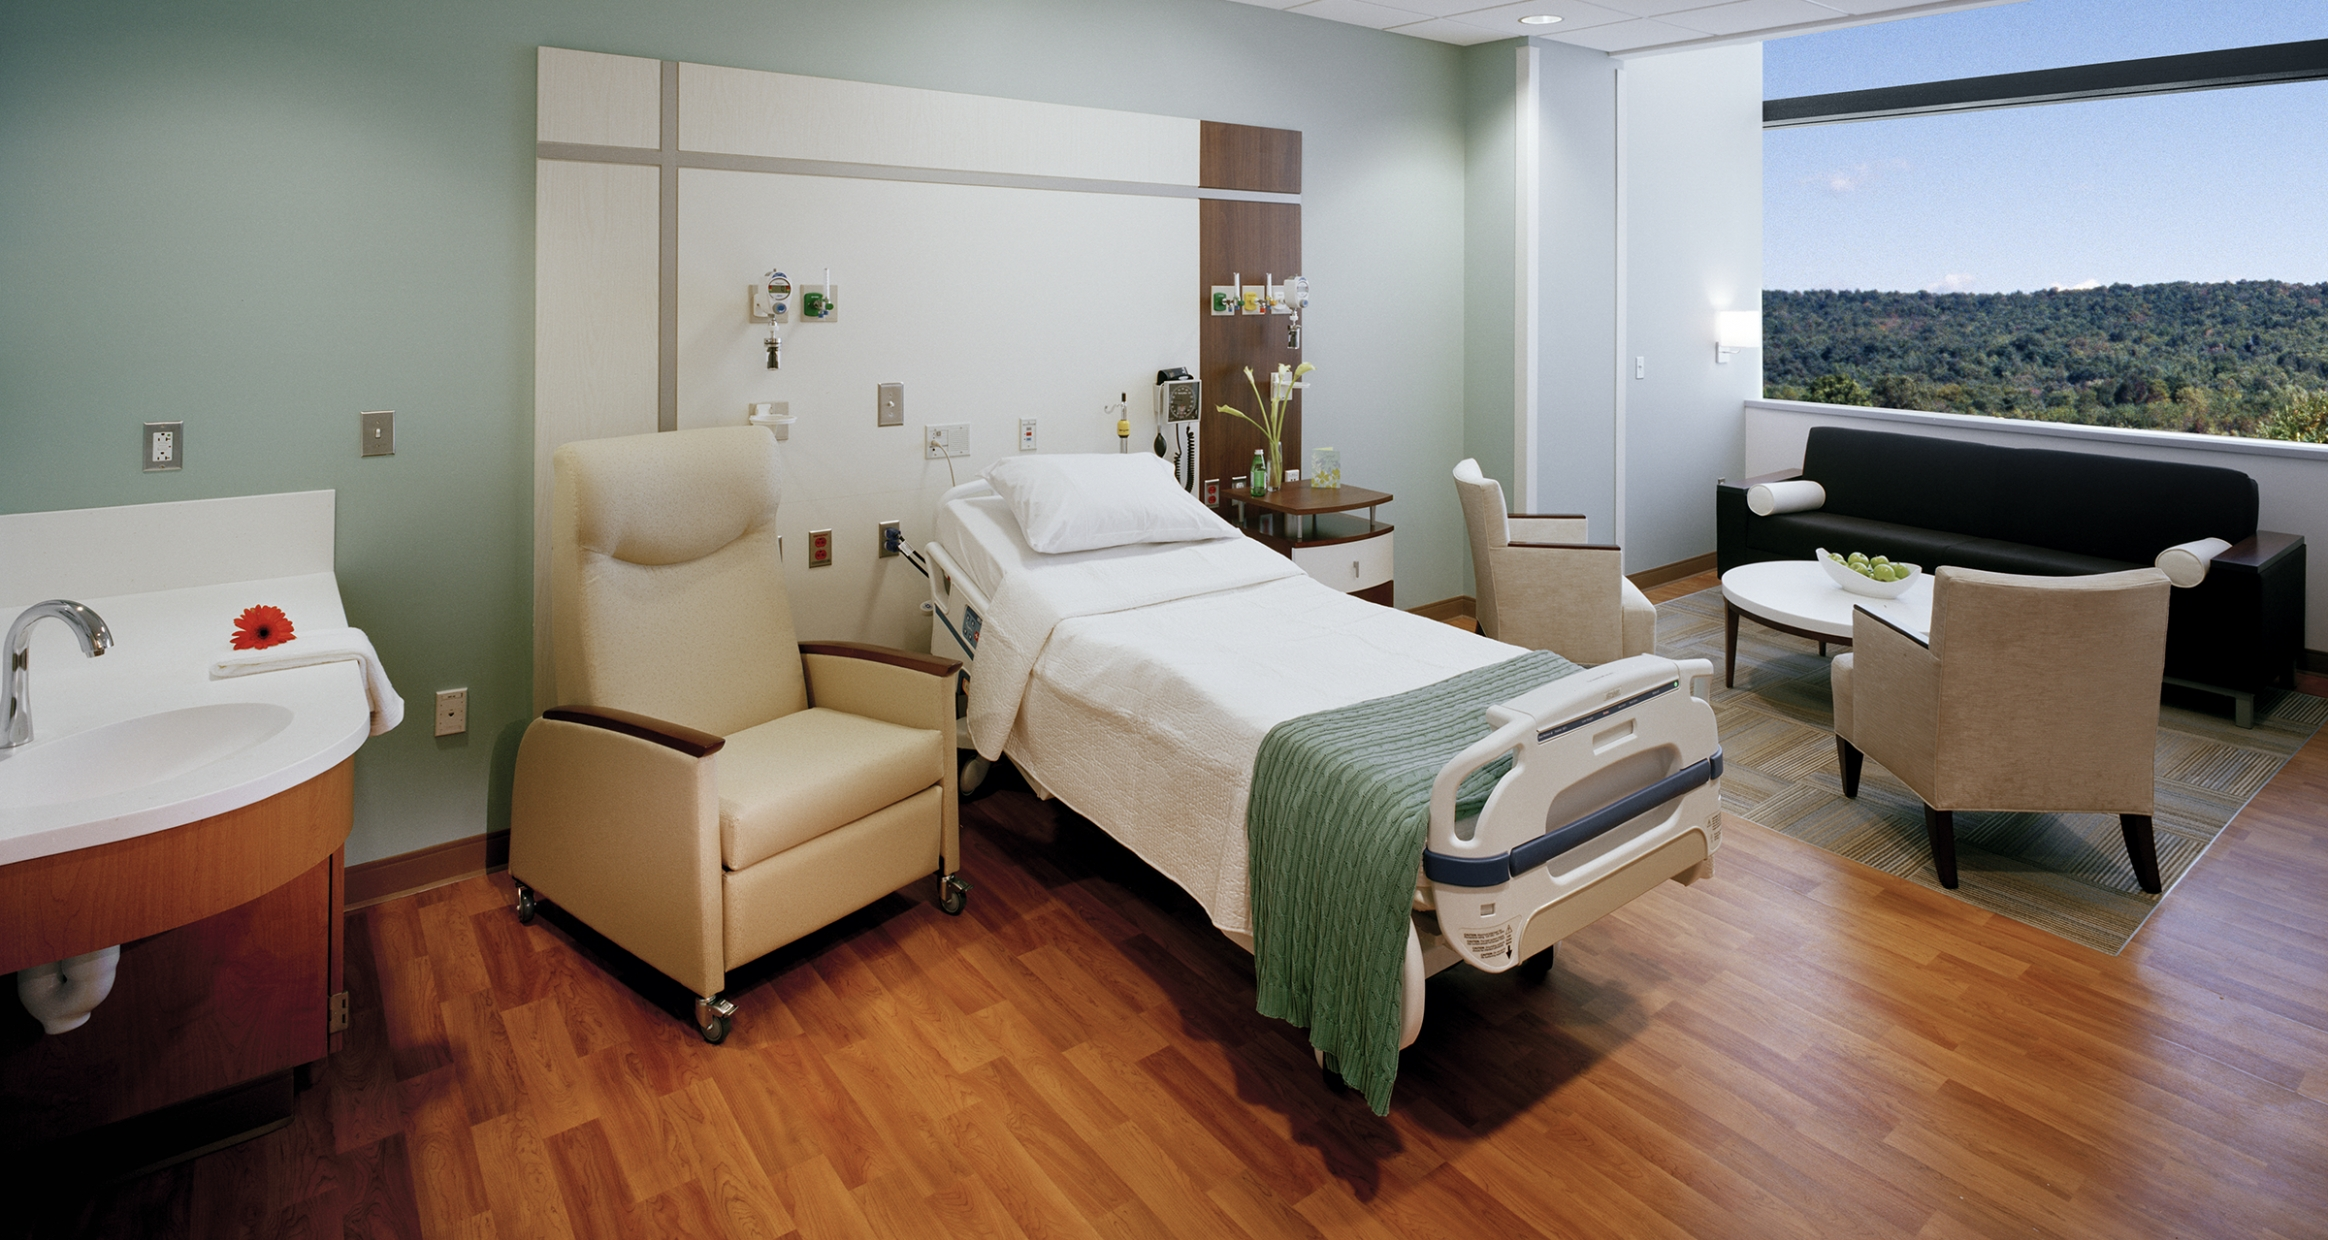 Jersey Shore University Medical Center Patient room